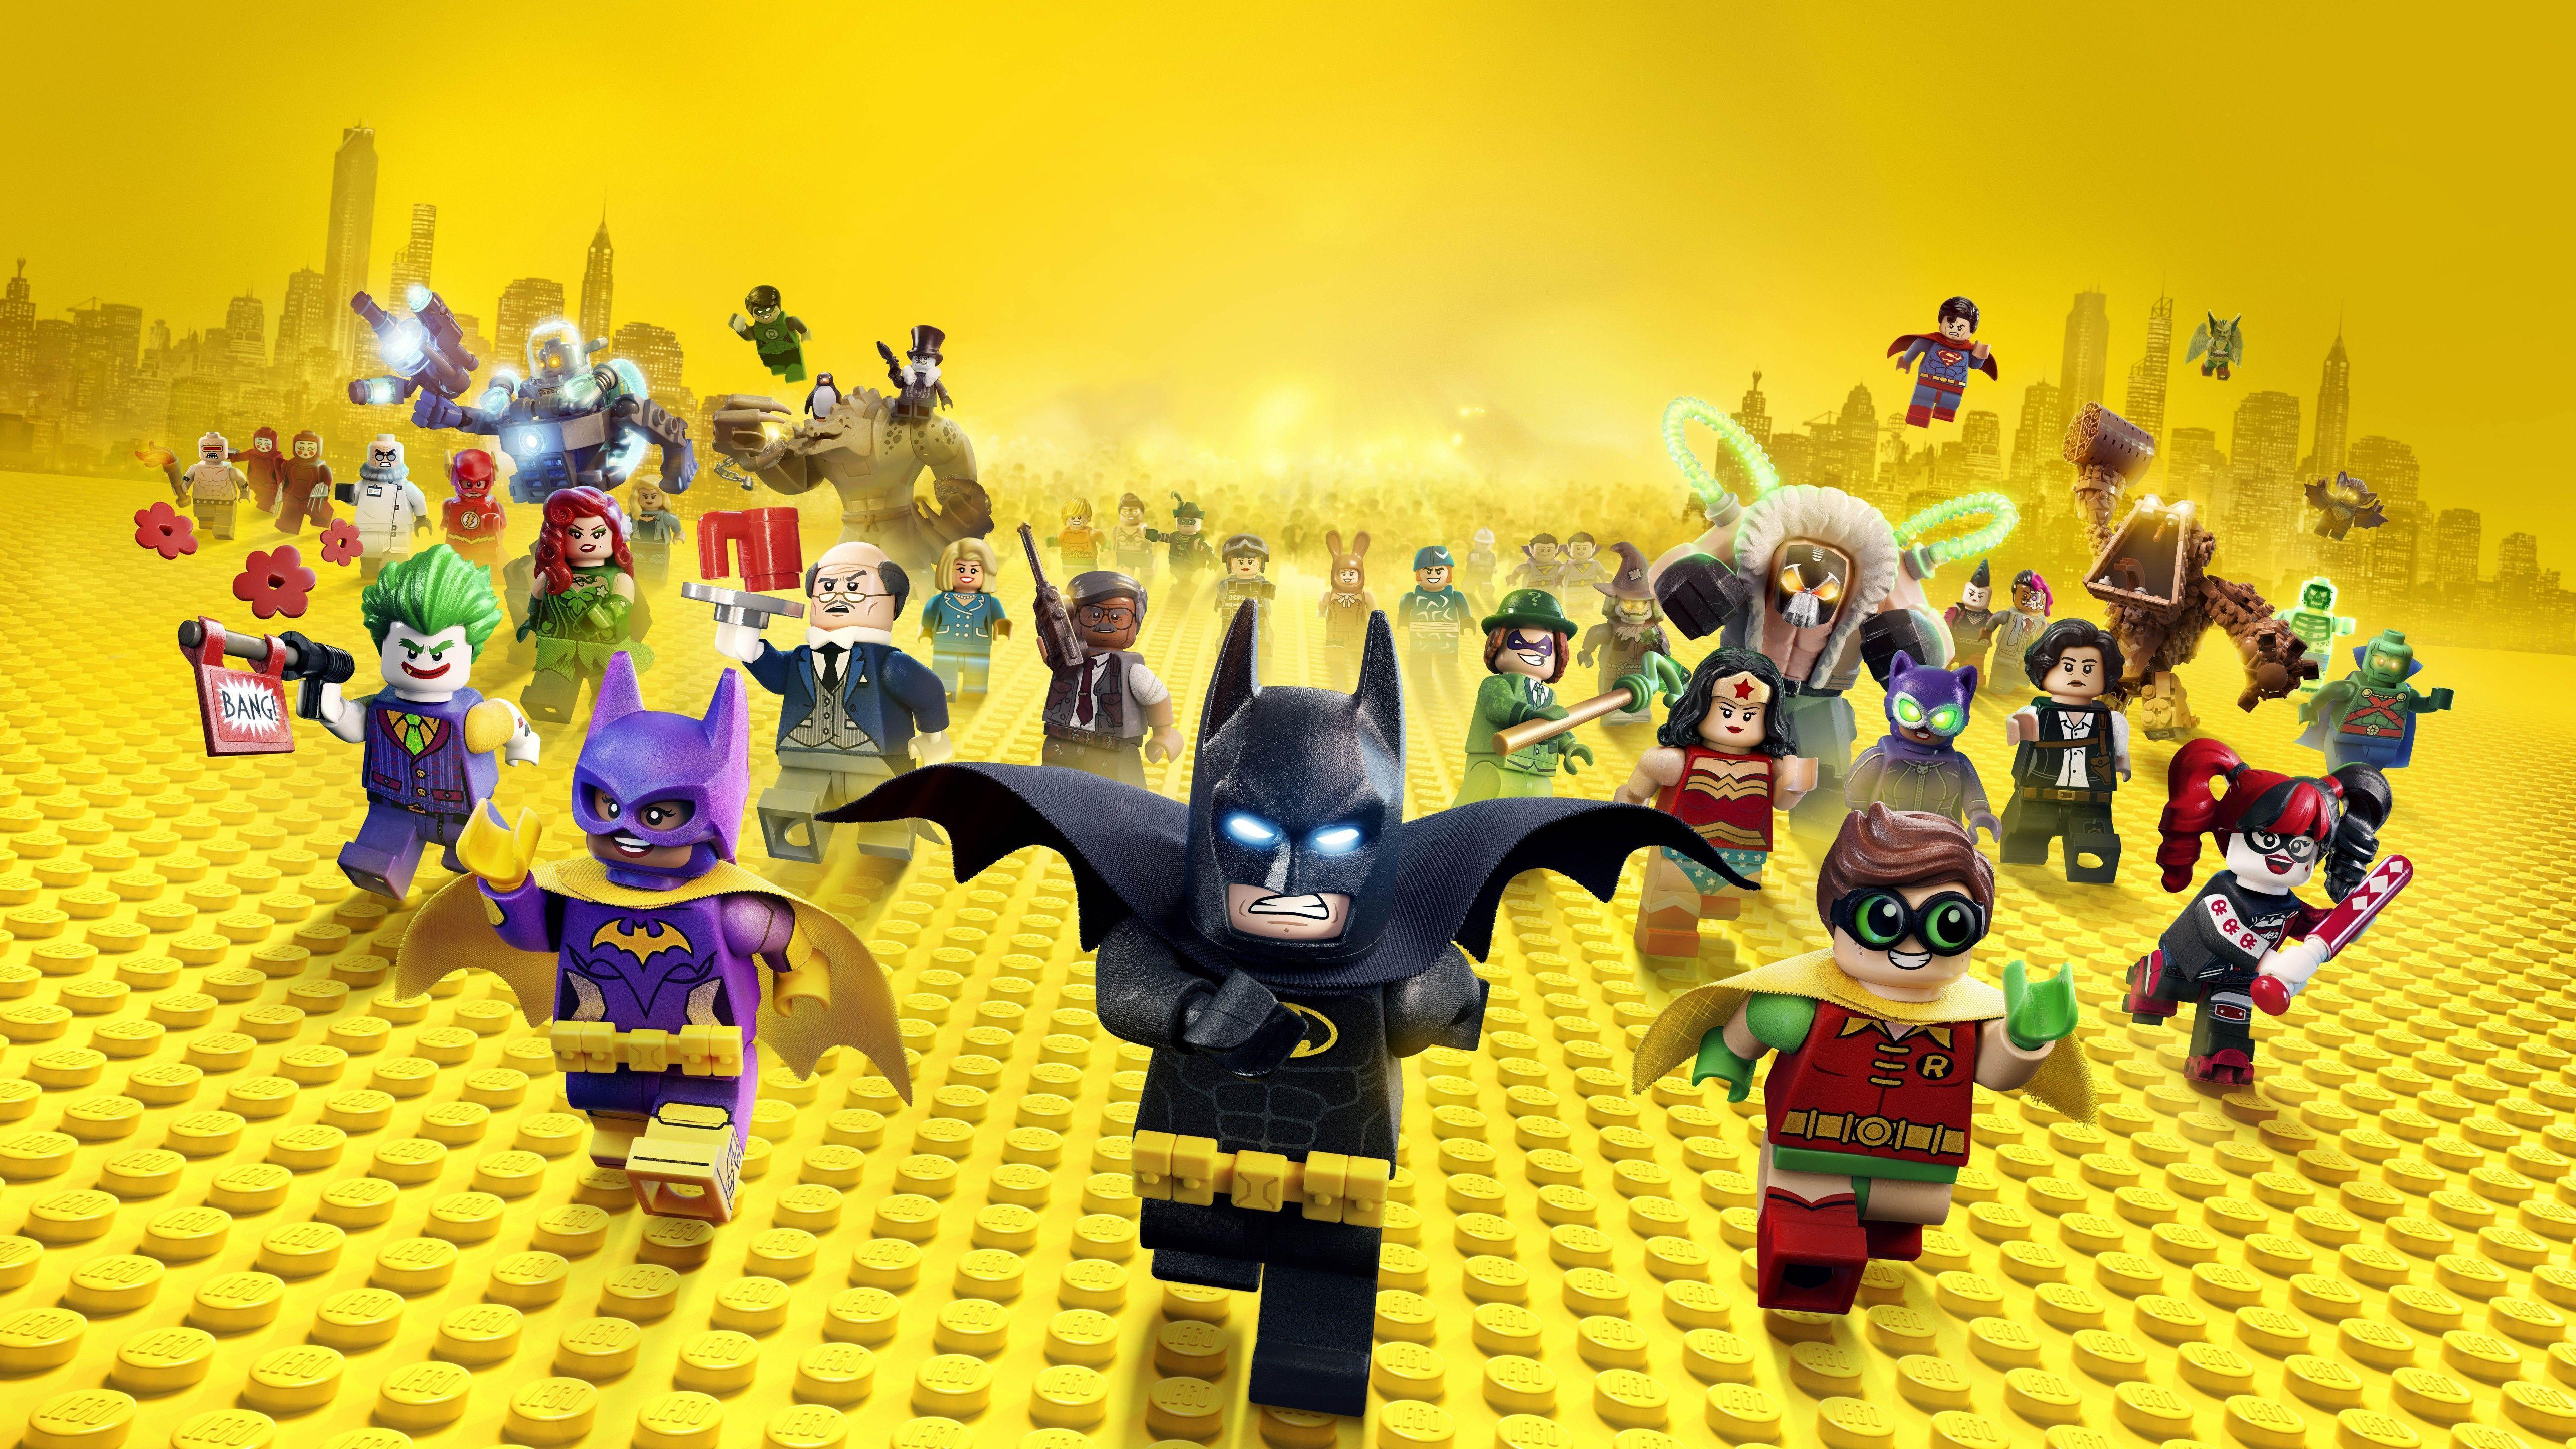 256 Lego HD Wallpapers   Backgrounds - Wallpaper Abyss